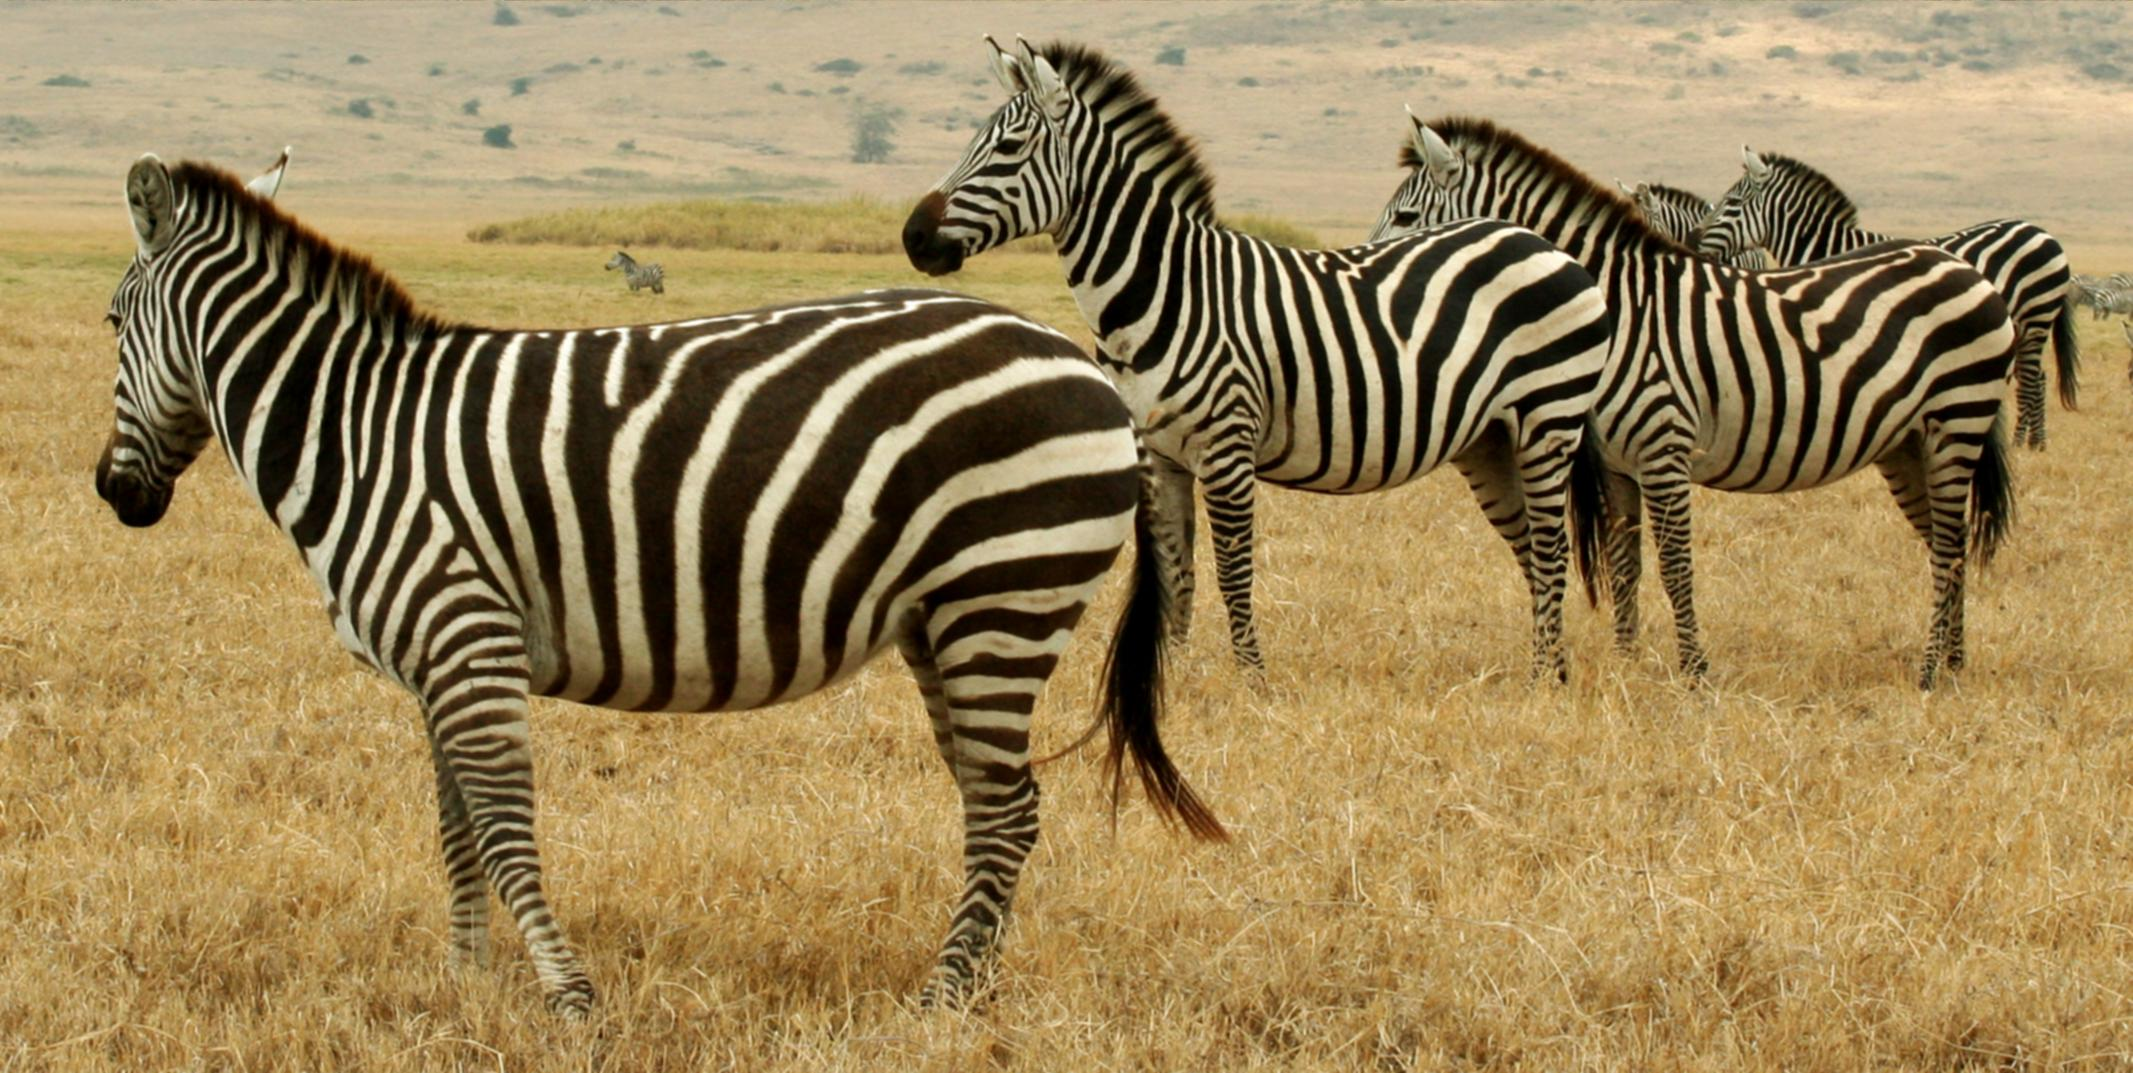 A line of zebras in Tanzania's Serengeti. Photo taken on September 11, 2005.